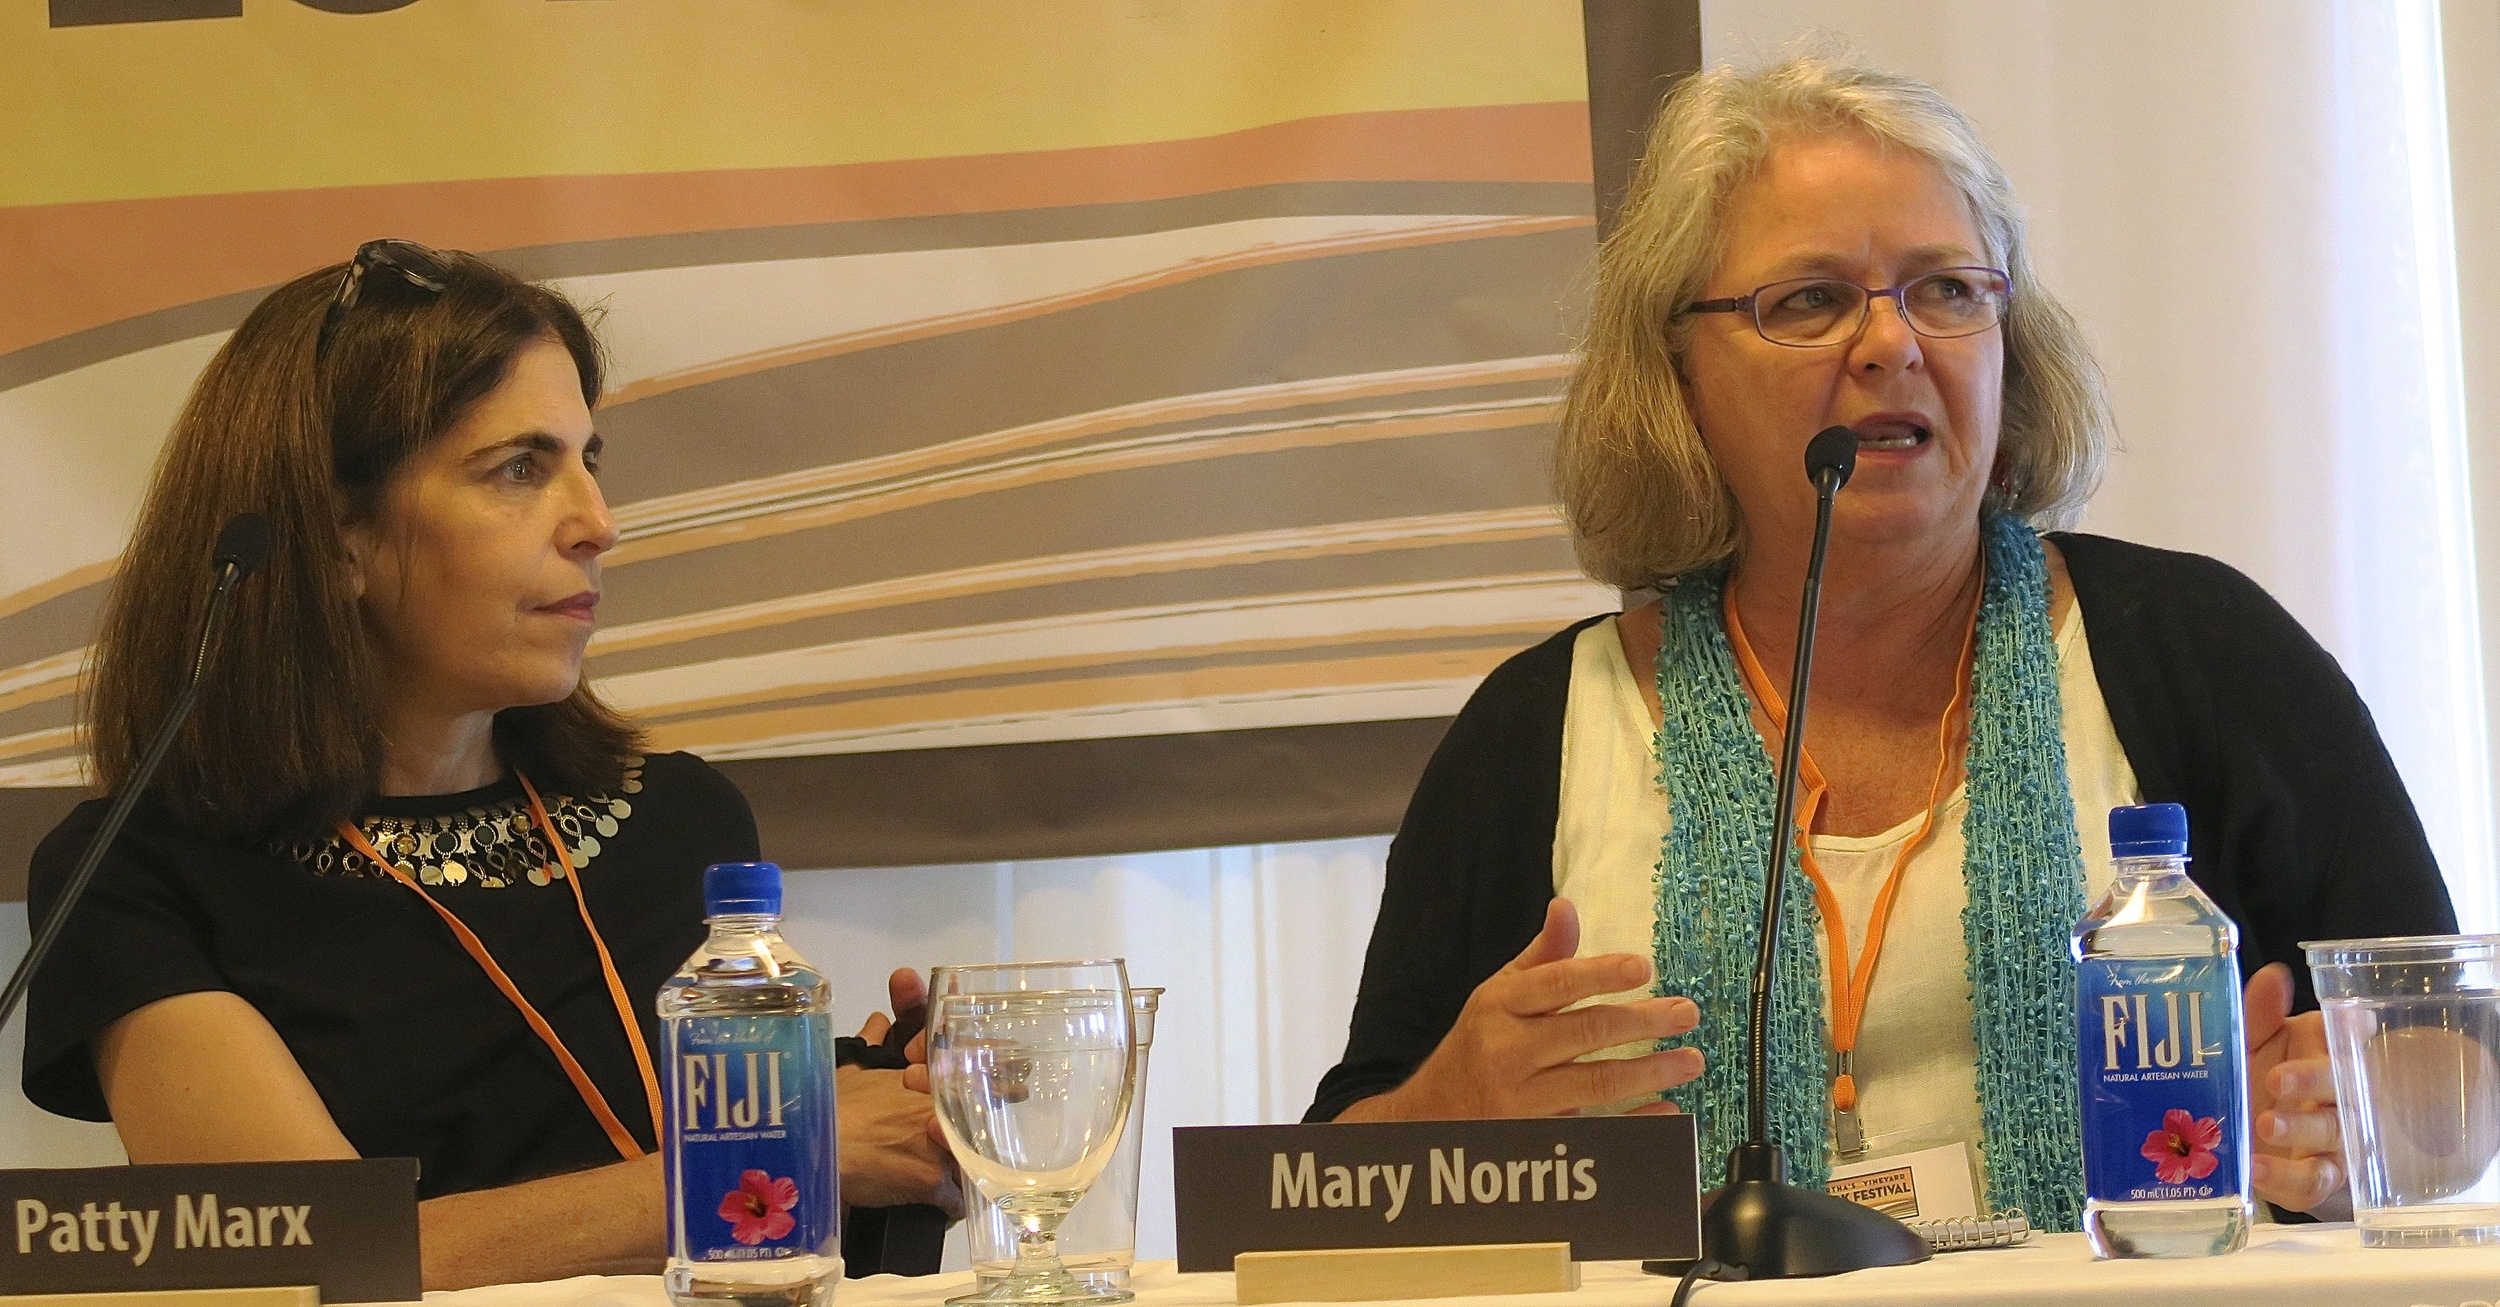 New Yorker Editor Mary Norris and New Yorker Writer Patty Marx